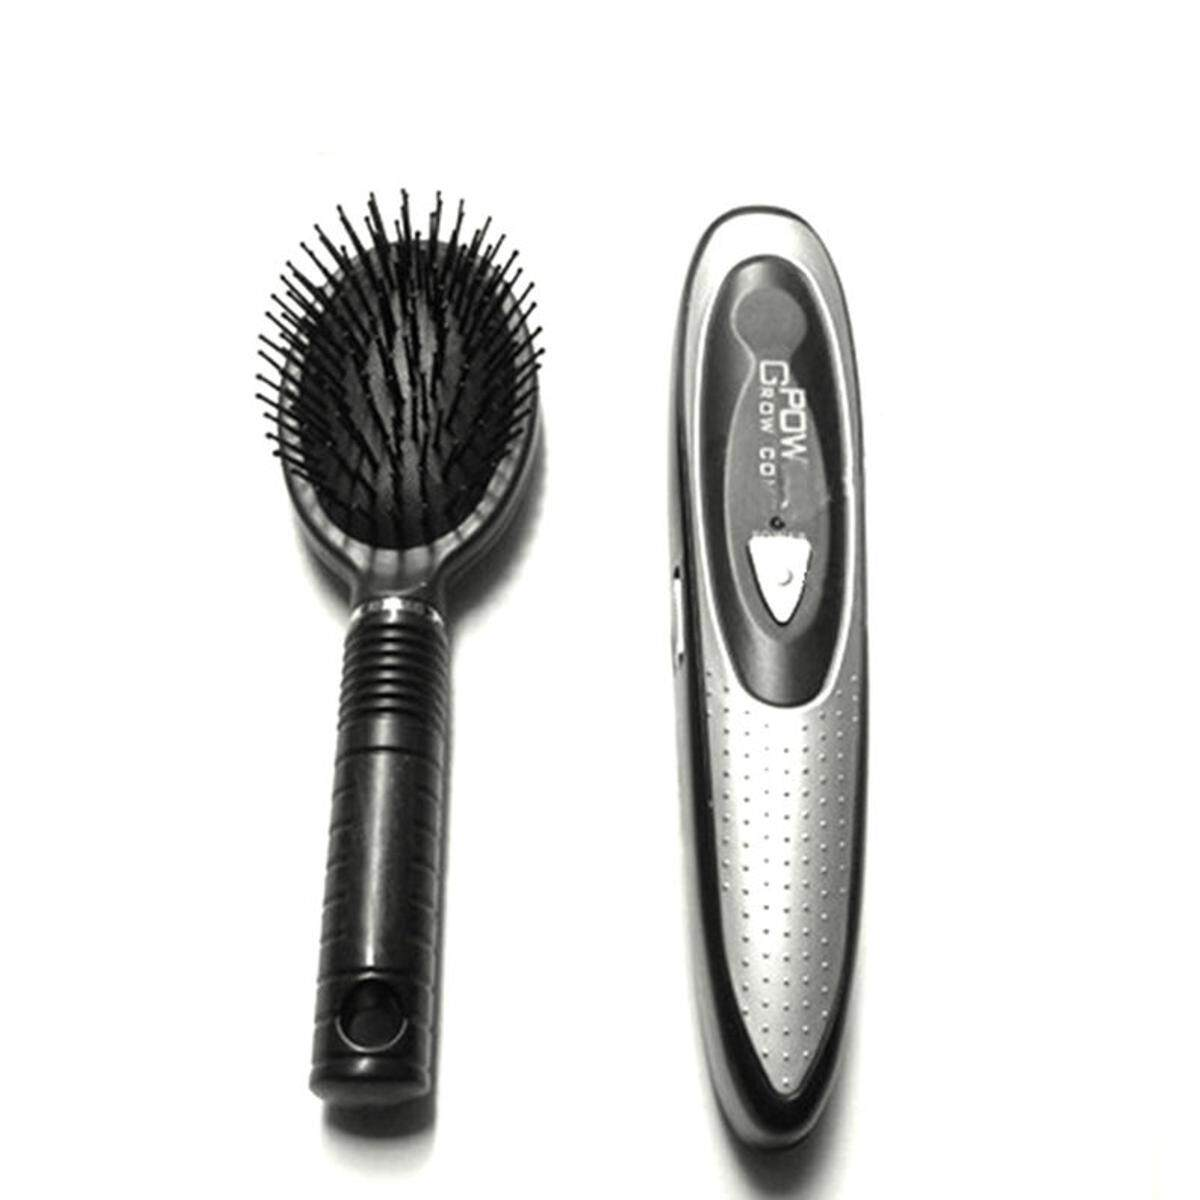 Electric Laser Massage Comb For Hair Growth Regrowth Hair Thickening - intl